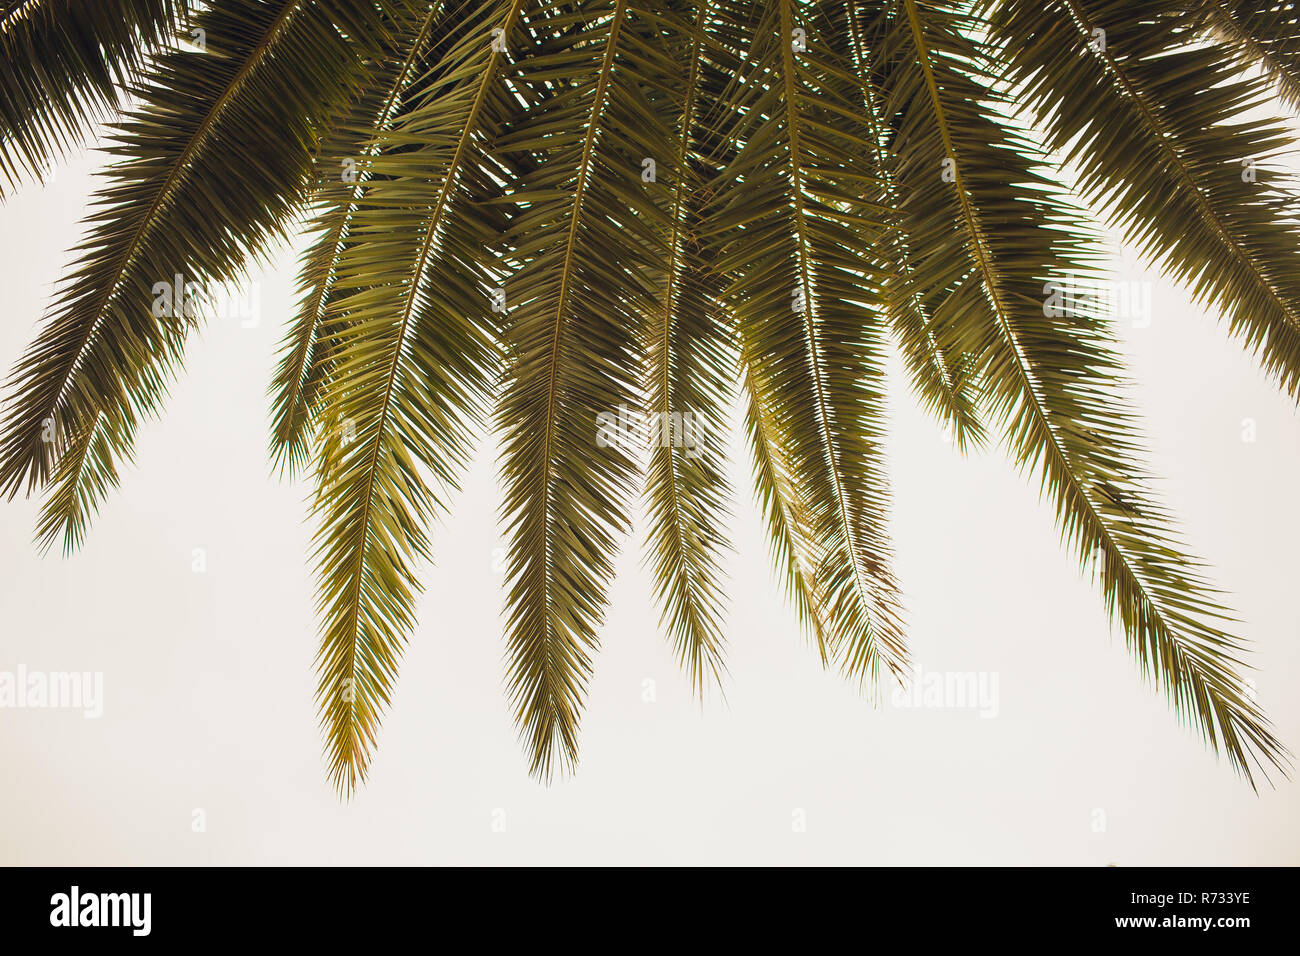 coconut tree at tropical coast,made with Vintage Tones,Warm tones - Stock Image